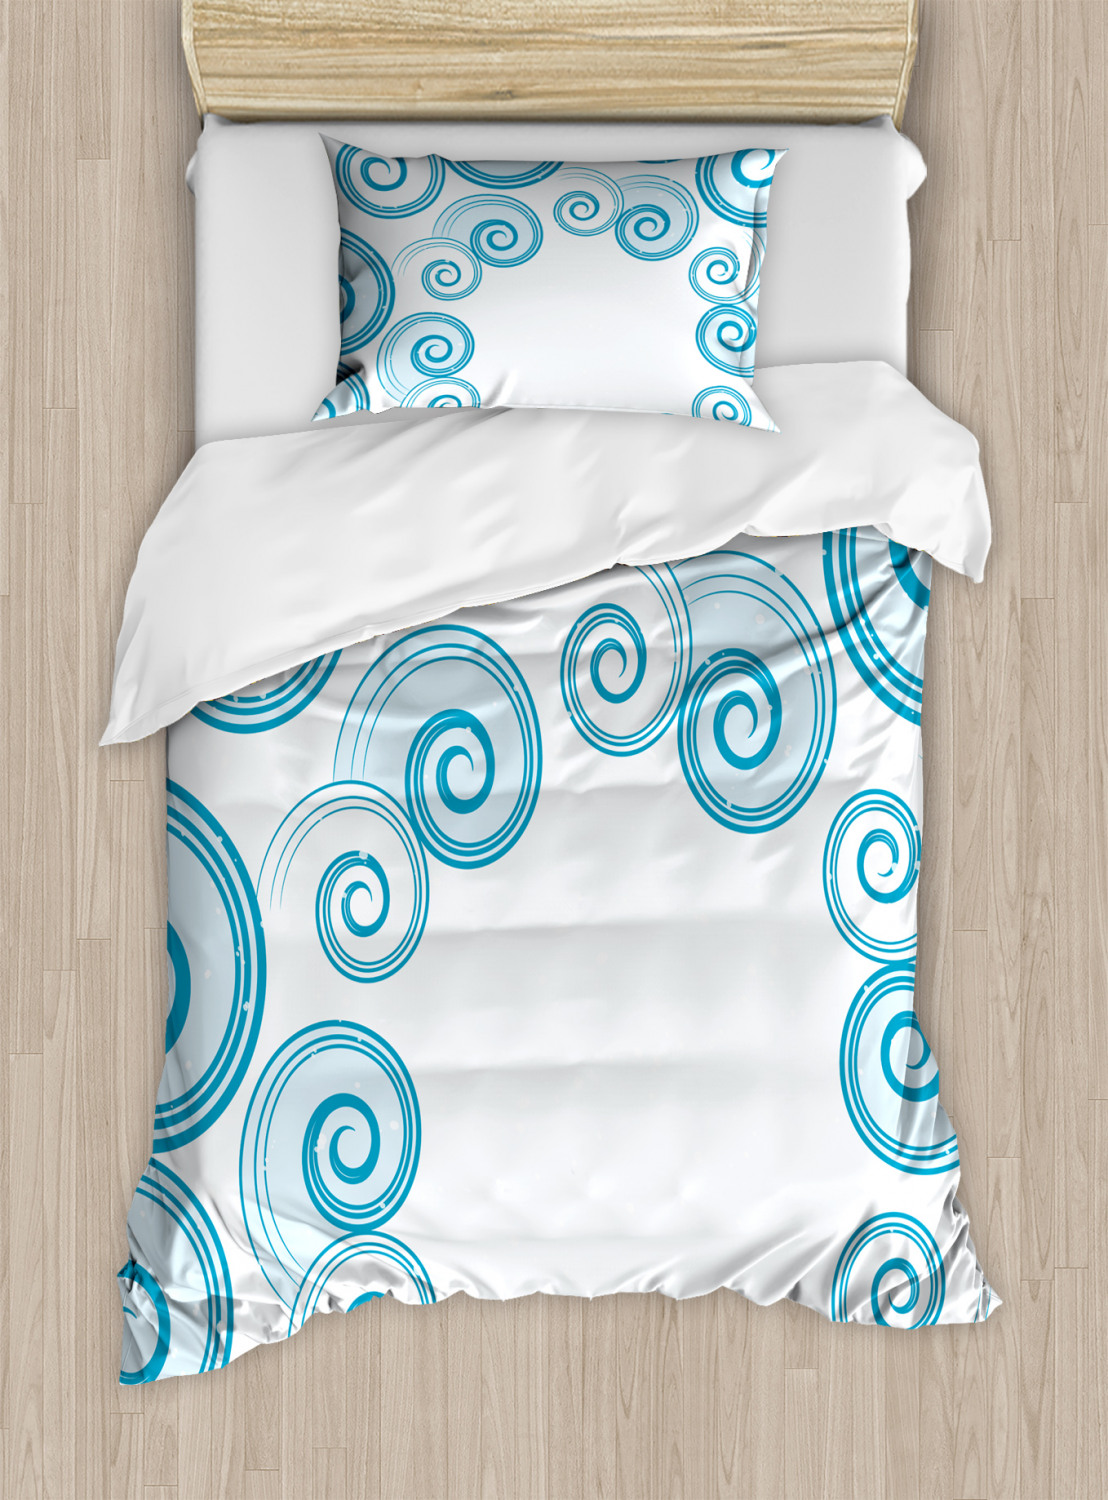 teal and white duvet cover set twin queen king sizes with pillow shams ambesonne ebay. Black Bedroom Furniture Sets. Home Design Ideas